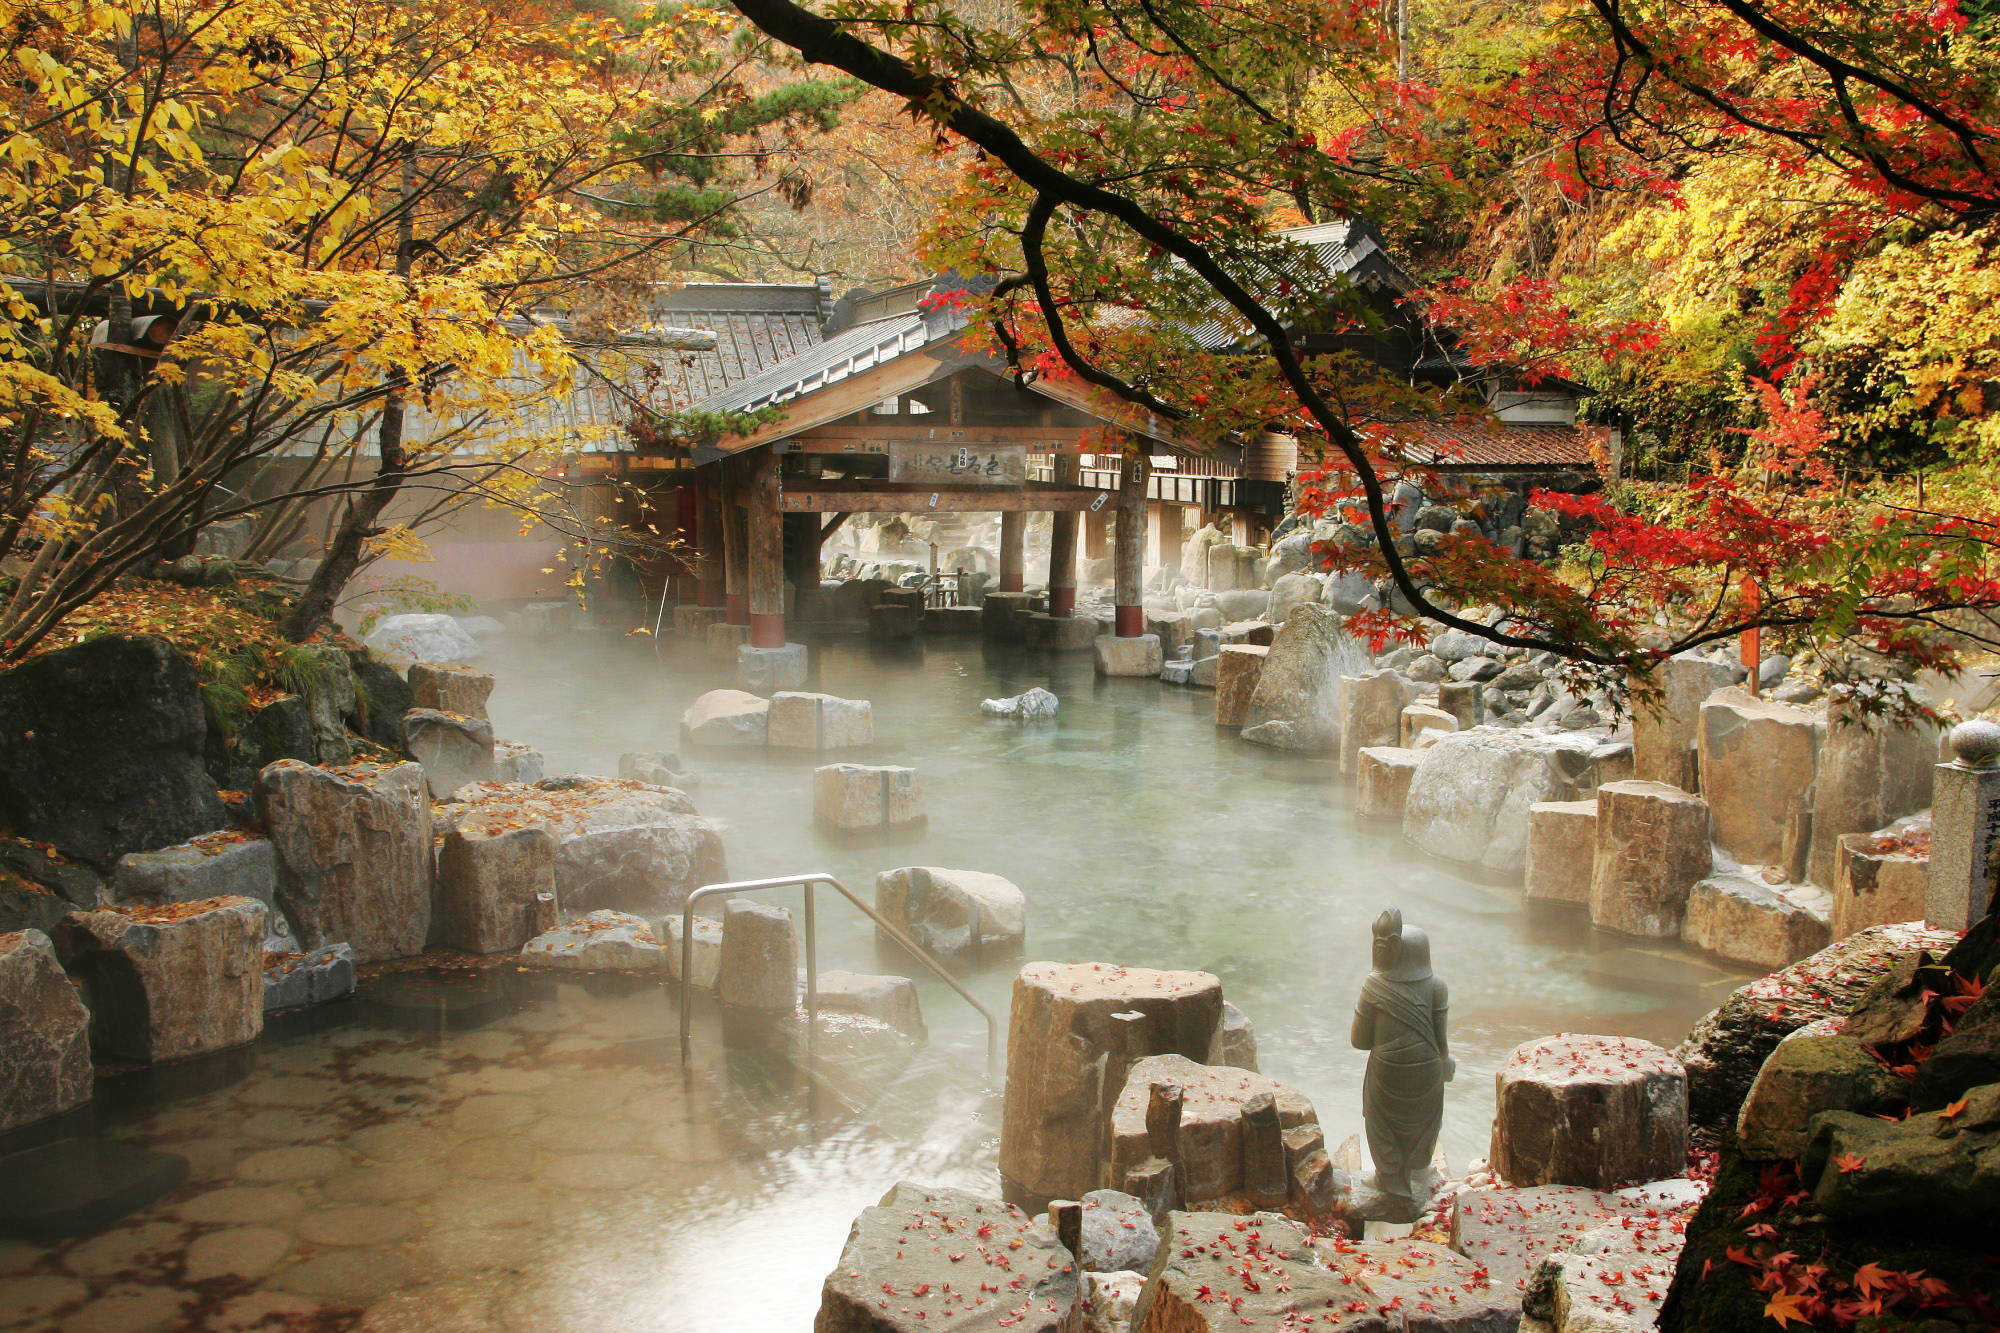 Leave your stress behind in one of Japan's many hot springs.